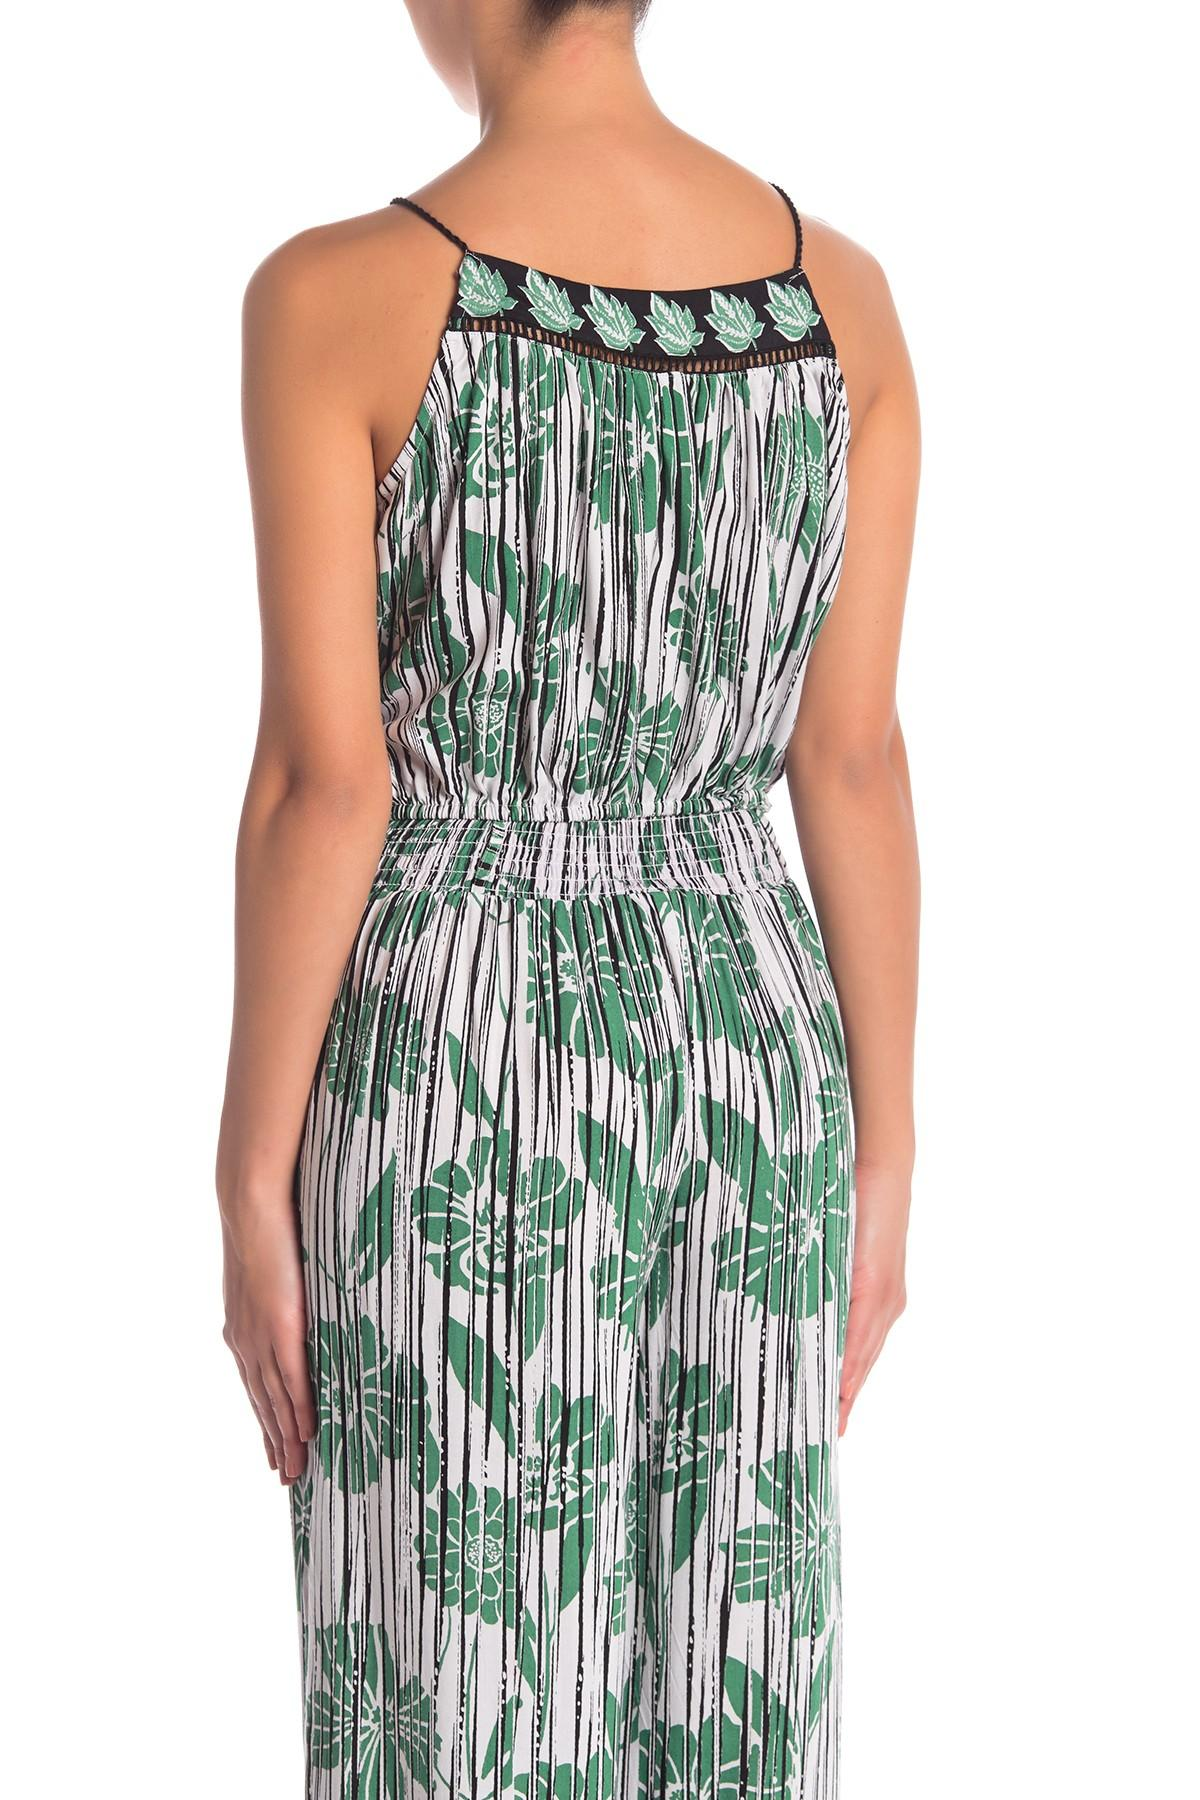 d340c5f002c077 Angie - Green Patterned Tie Strap Cami - Lyst. View fullscreen